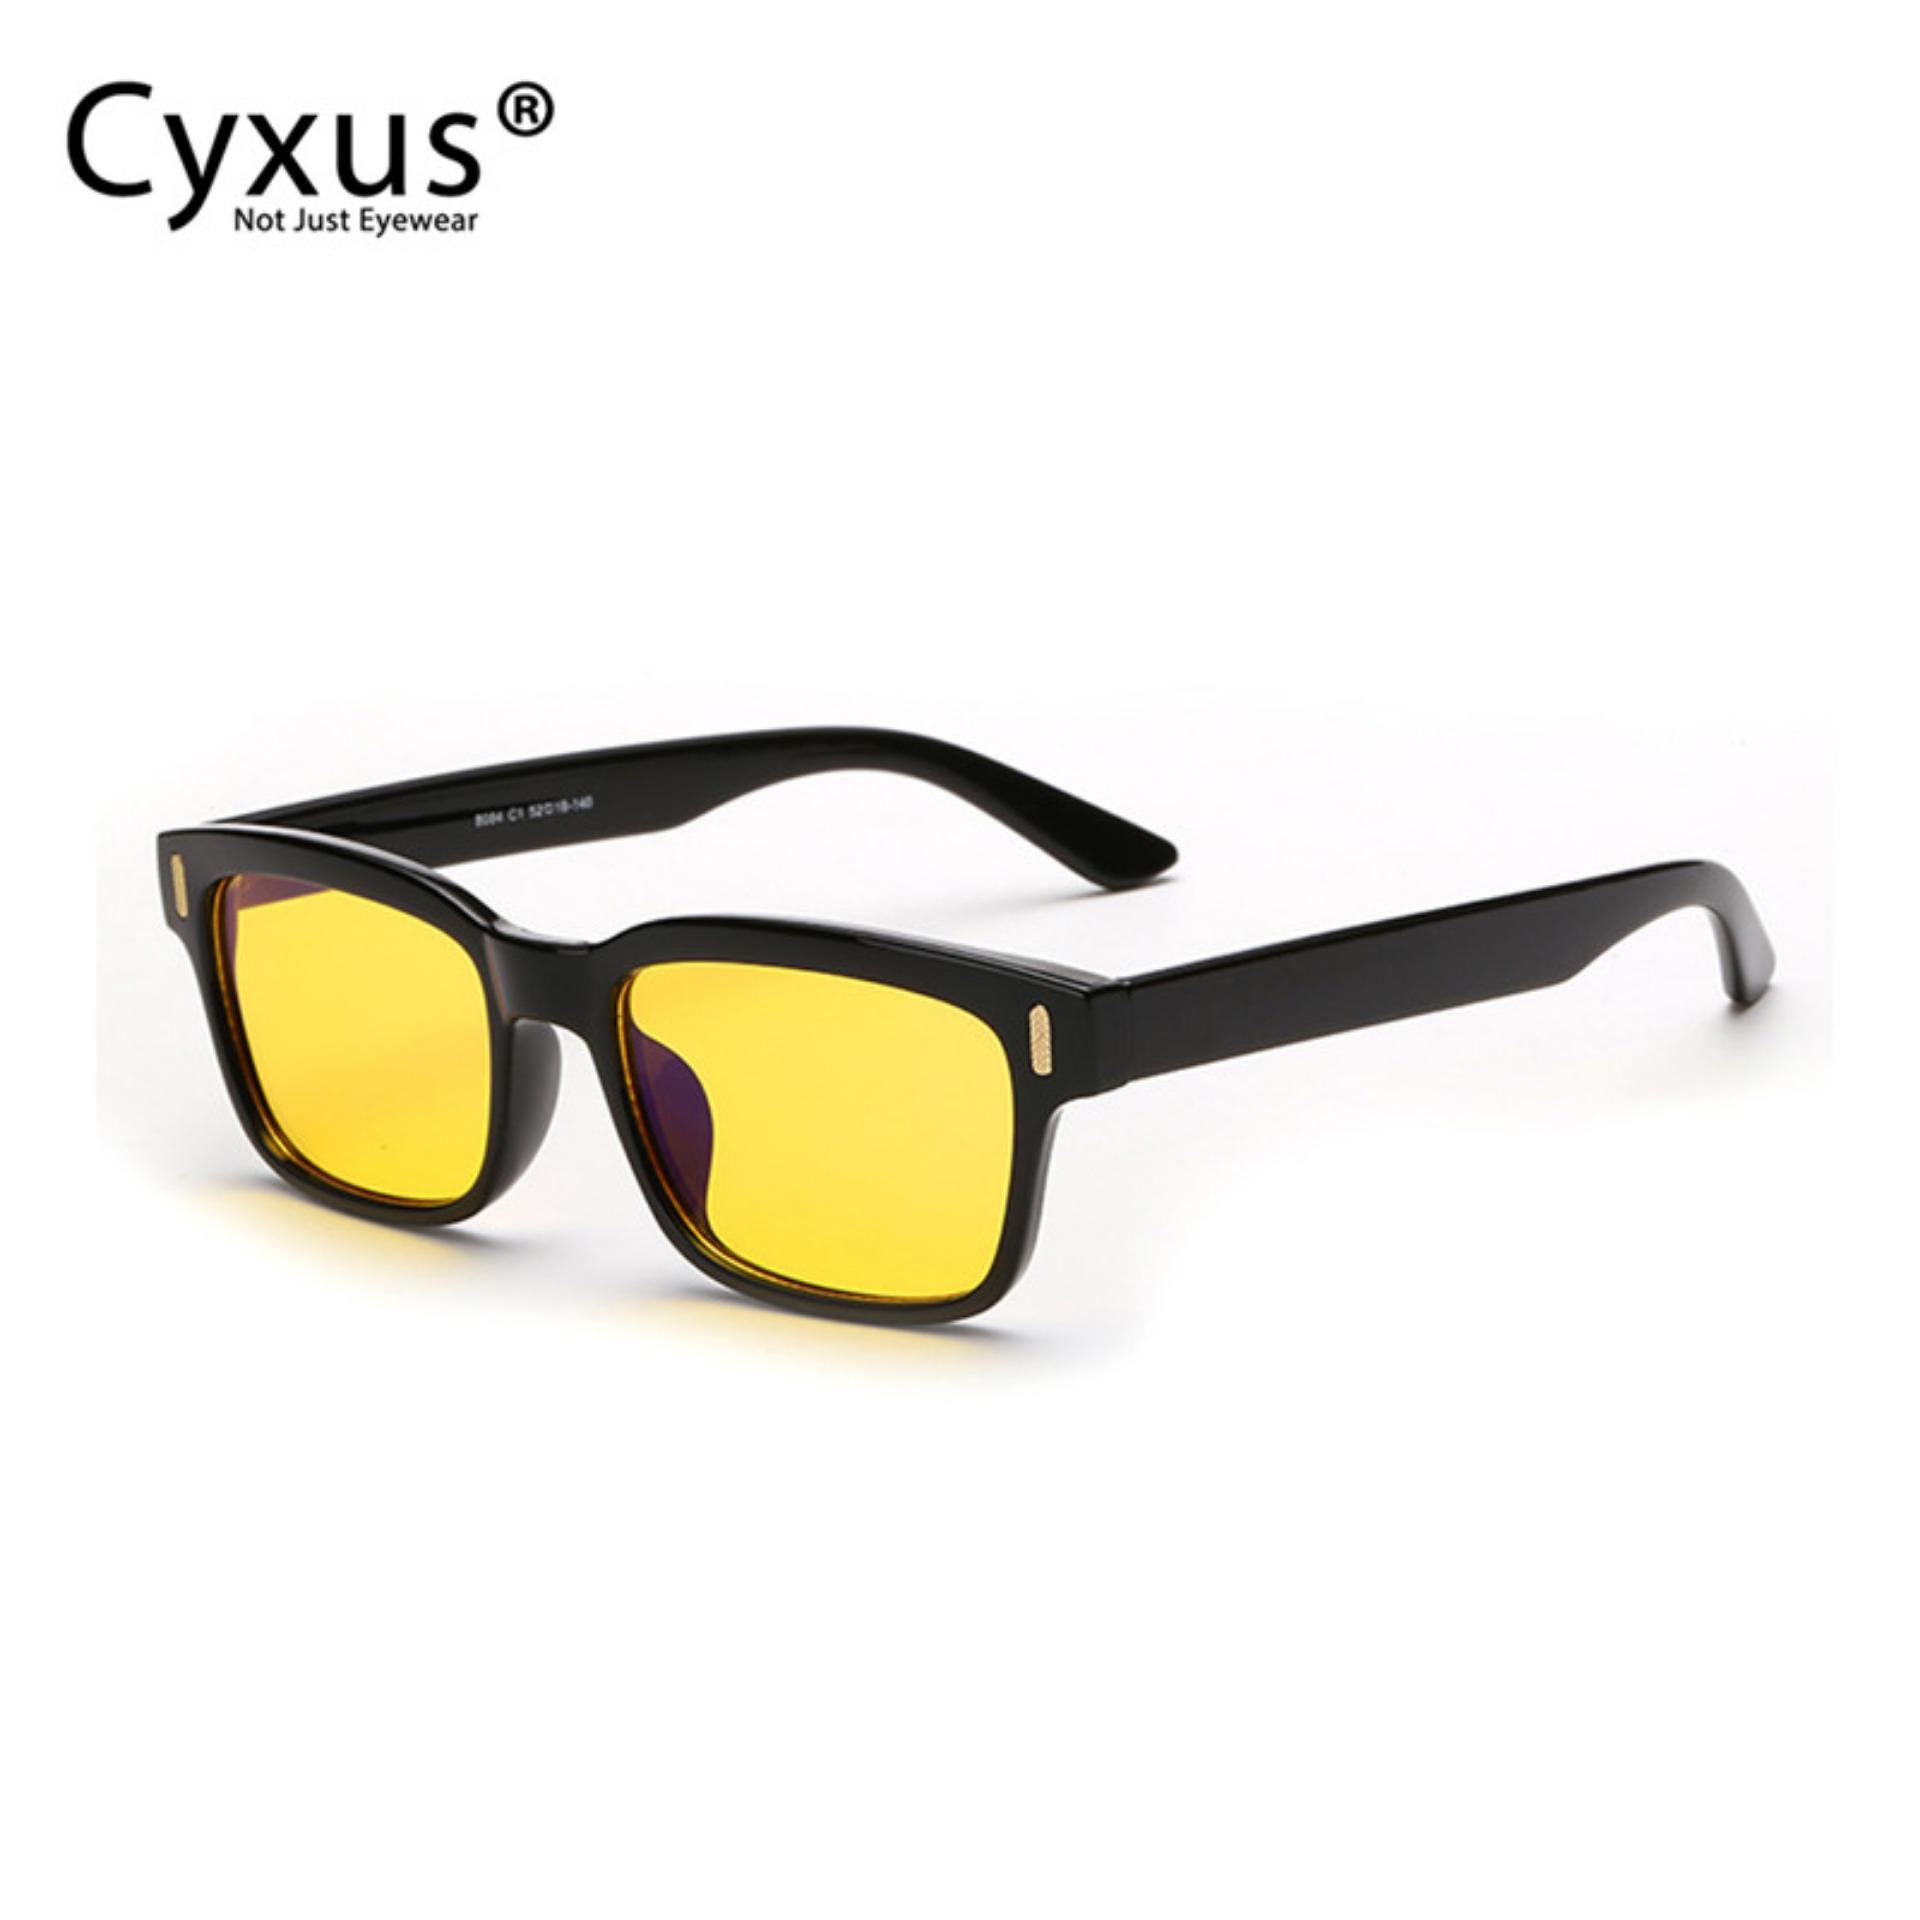 Where Can You Buy Cyxus Yellow Lens Computer Glasses Blocking Blue Light Uv Anti Fatigue Headaches Black Frame Gaming Reading Eyewear